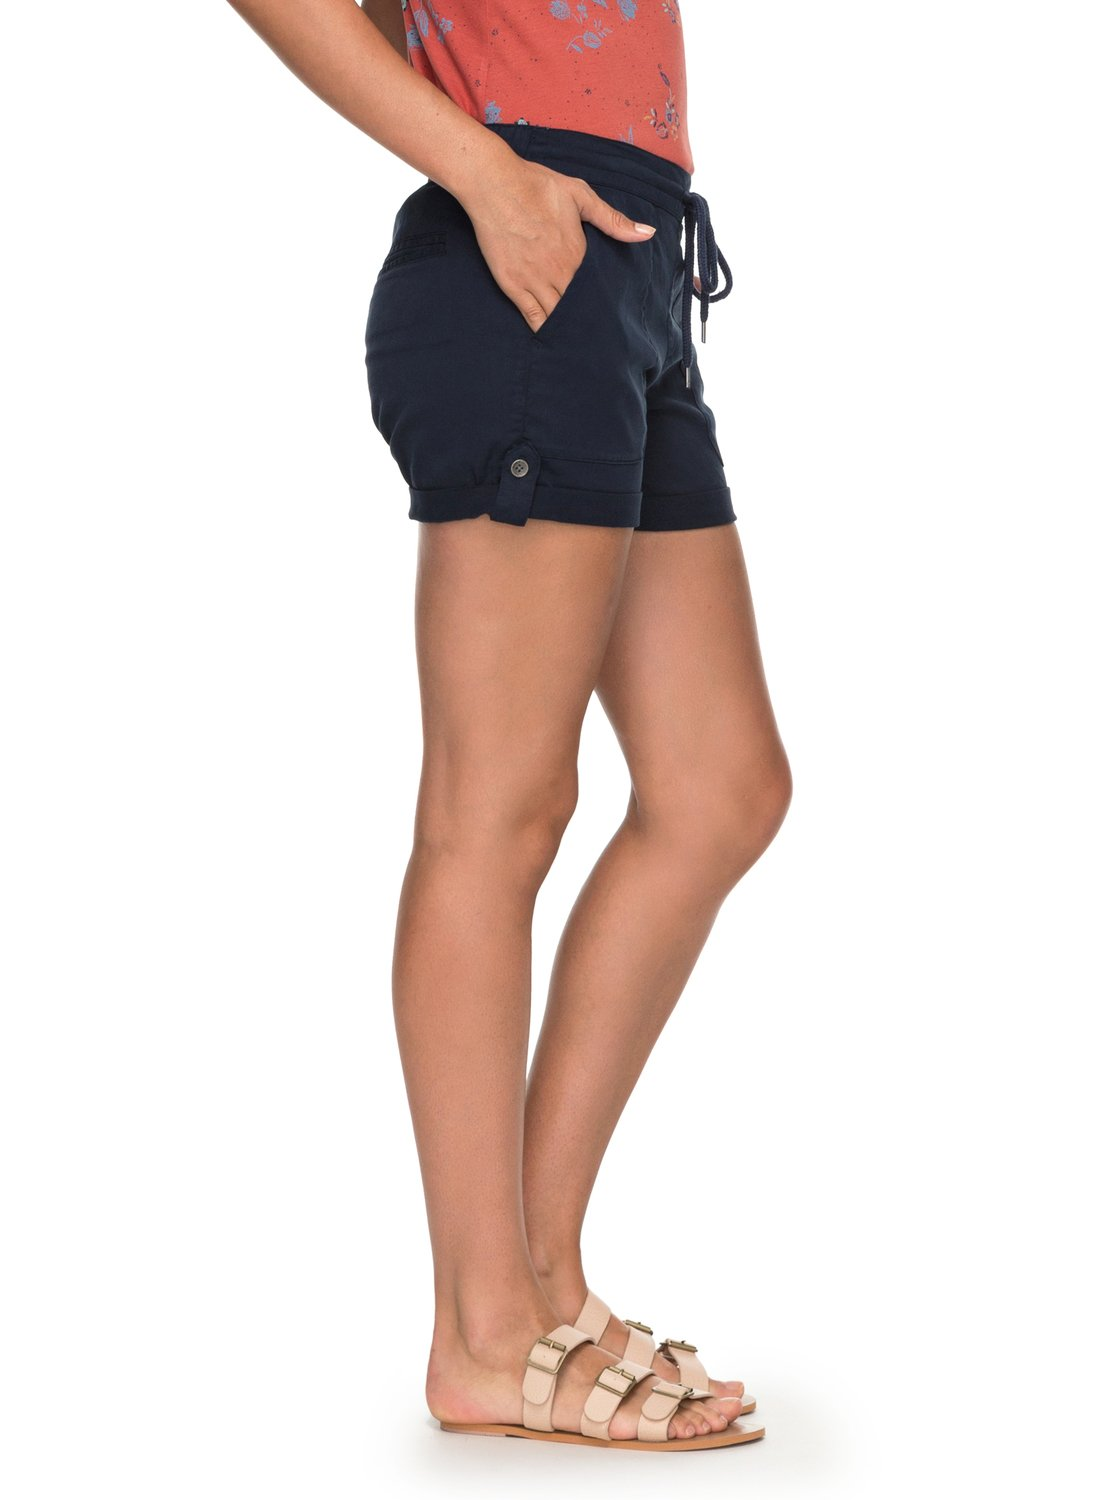 Arecibo Shorts dress blues Roxy